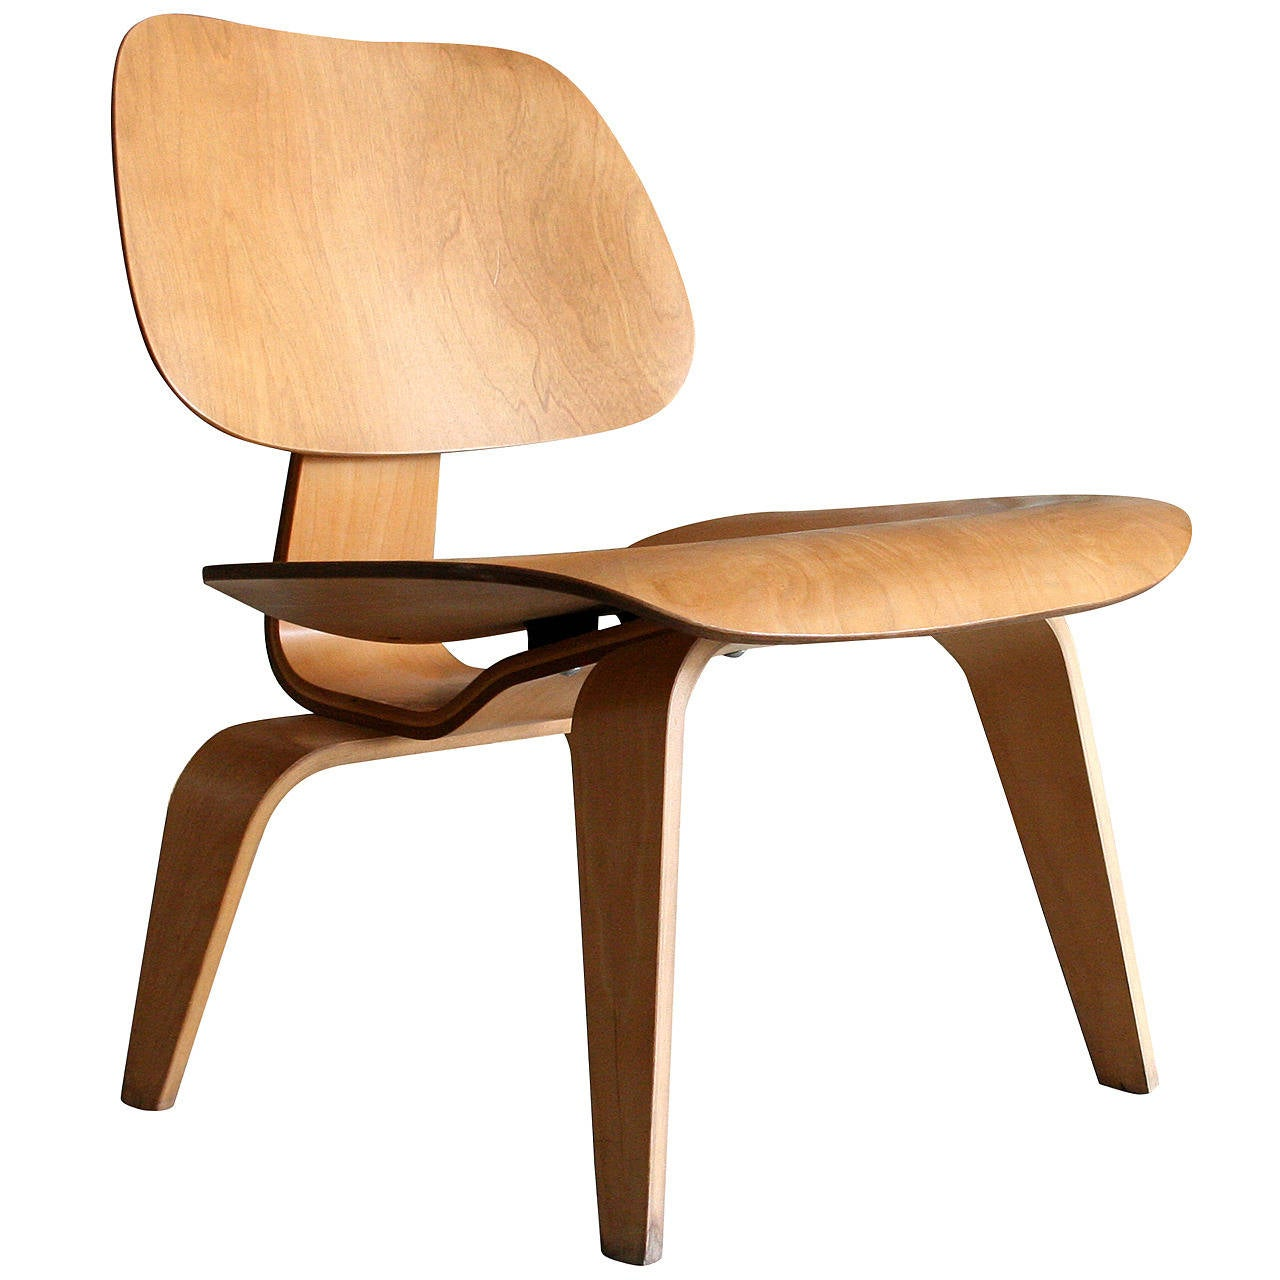 Lounge Chair Wood LCW by Charles Eames for Herman Miller